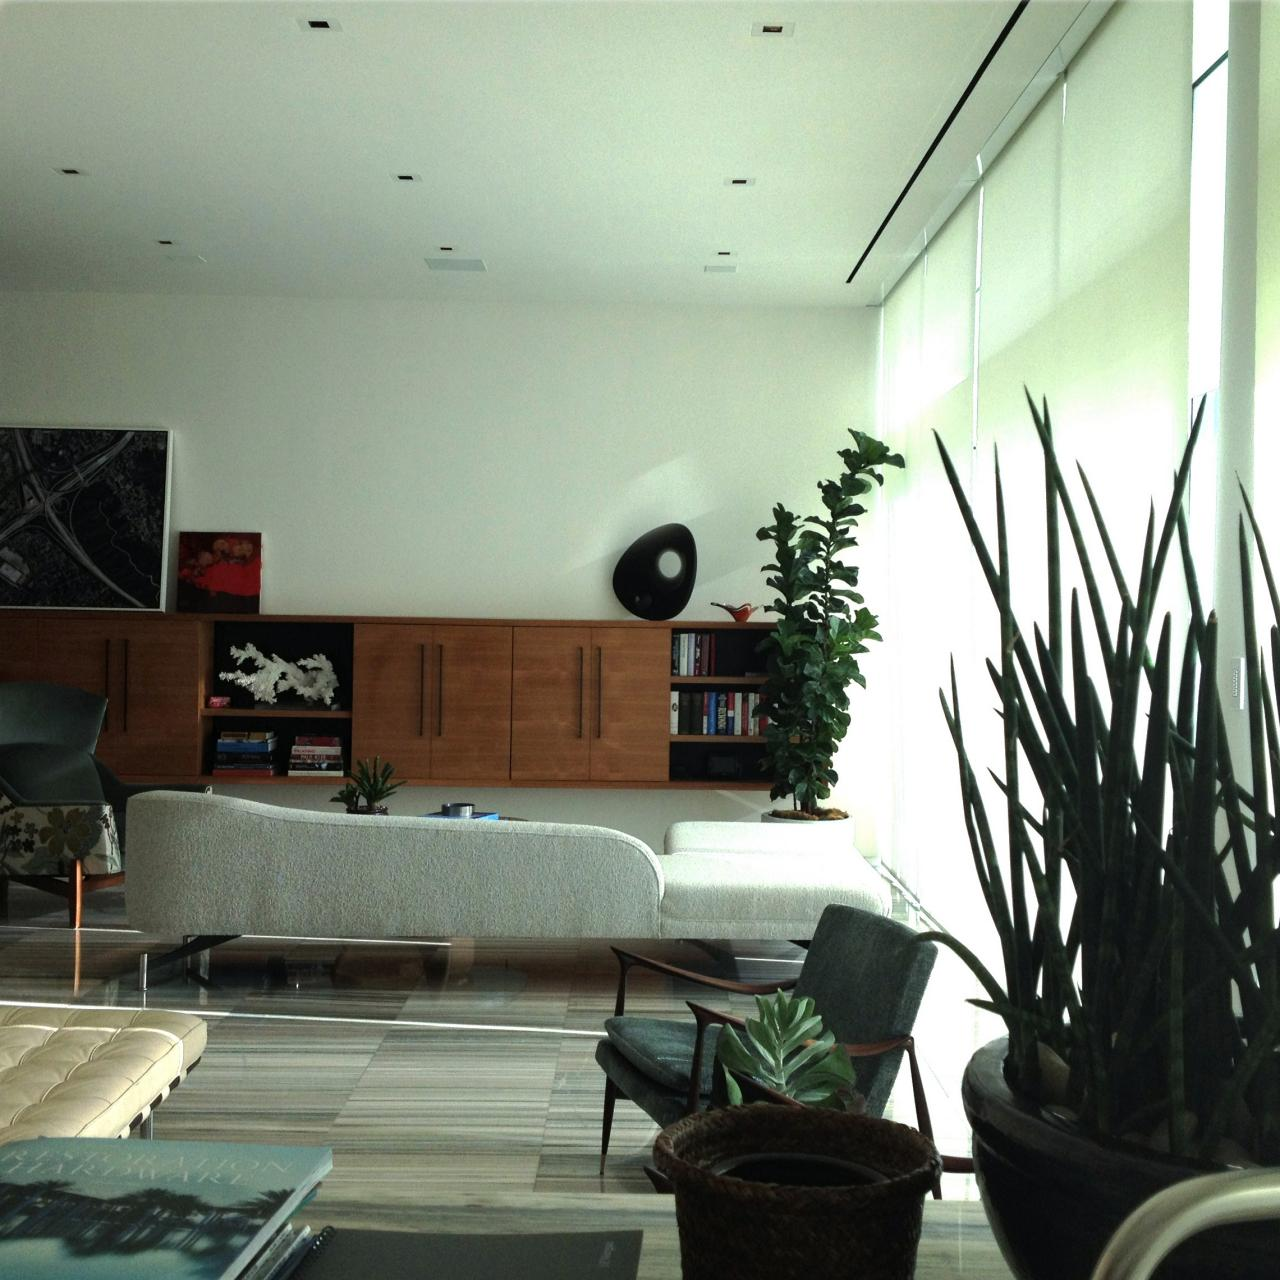 artificial house plants living room design ideas with grey sofa rules for decorating faux hgtv s sleek modern space filled indoor